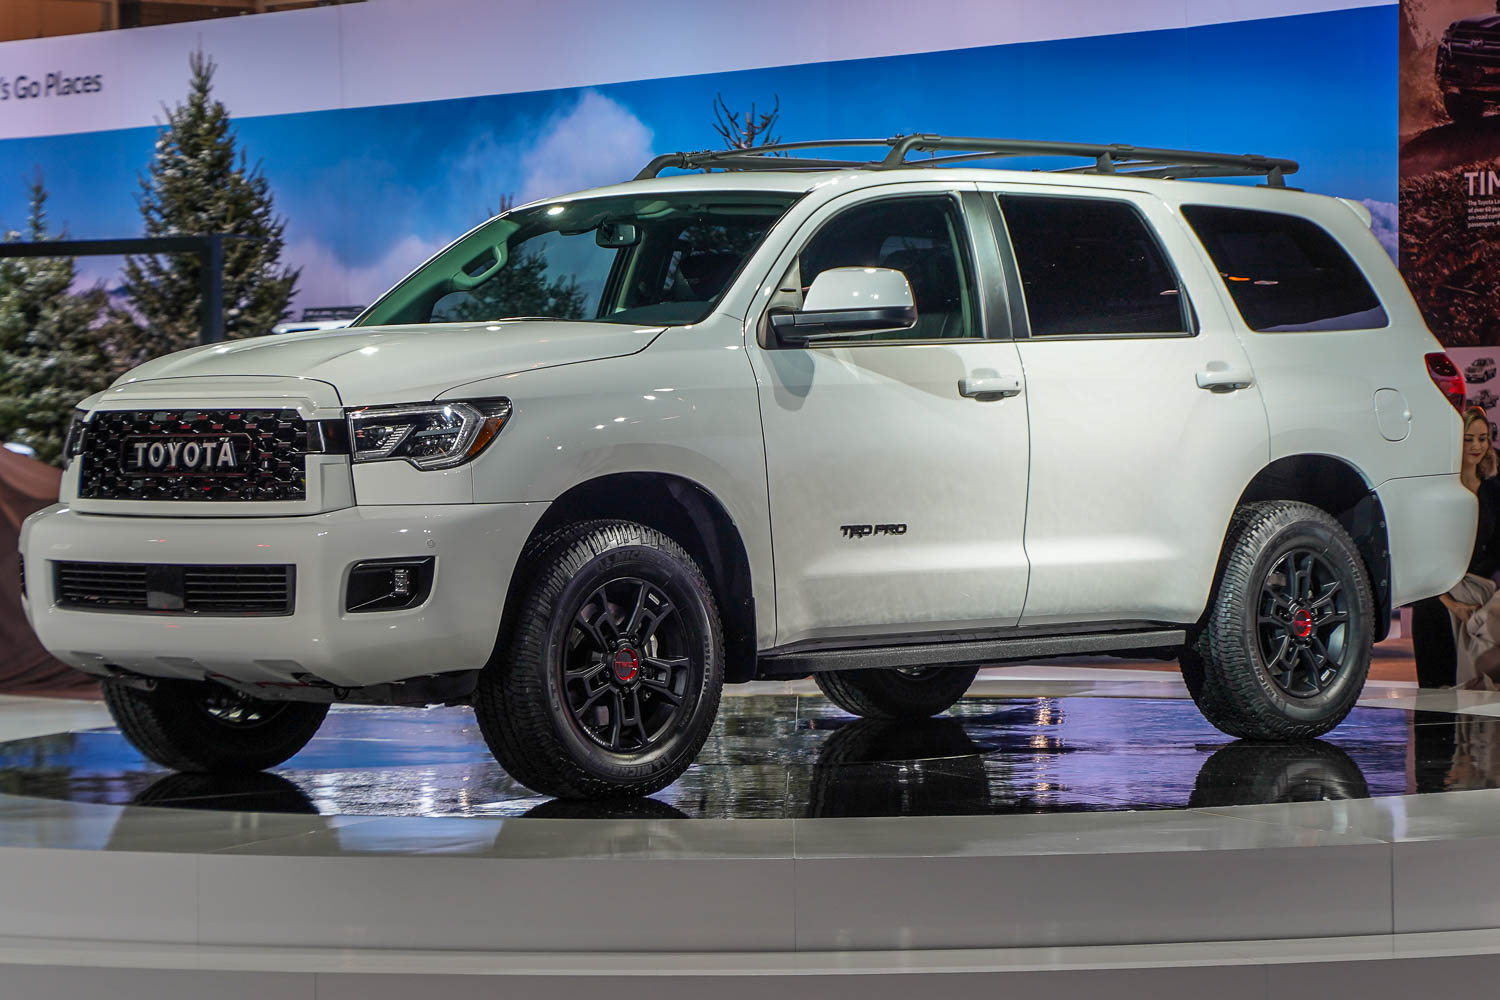 2019 Toyota Sequoia at Chicago Auto Show, February 2019